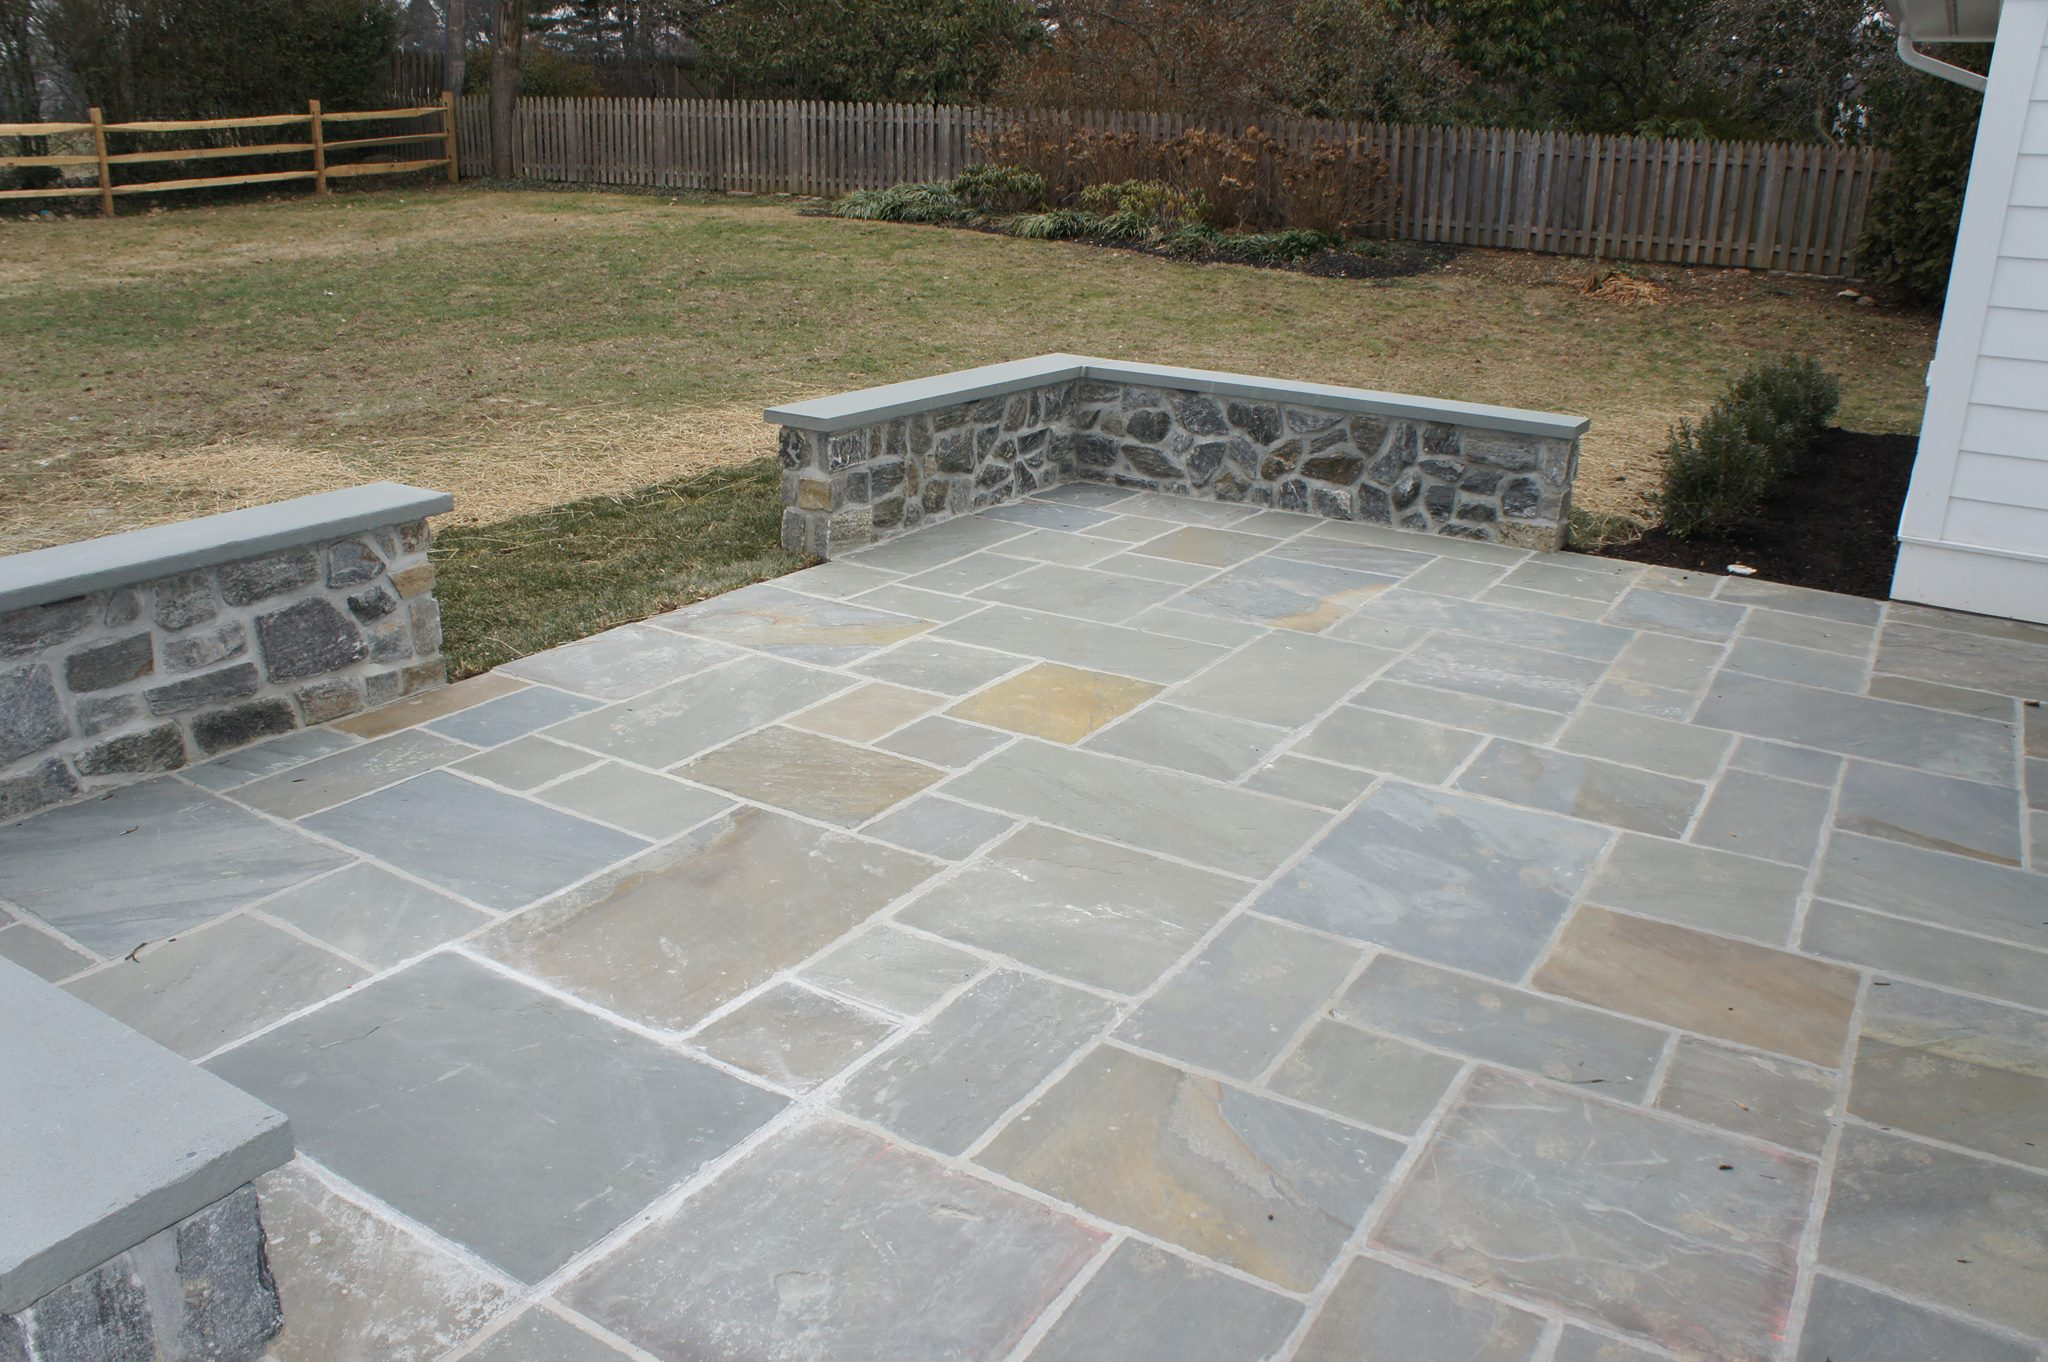 Wayne Patio Top Notch General Contracting